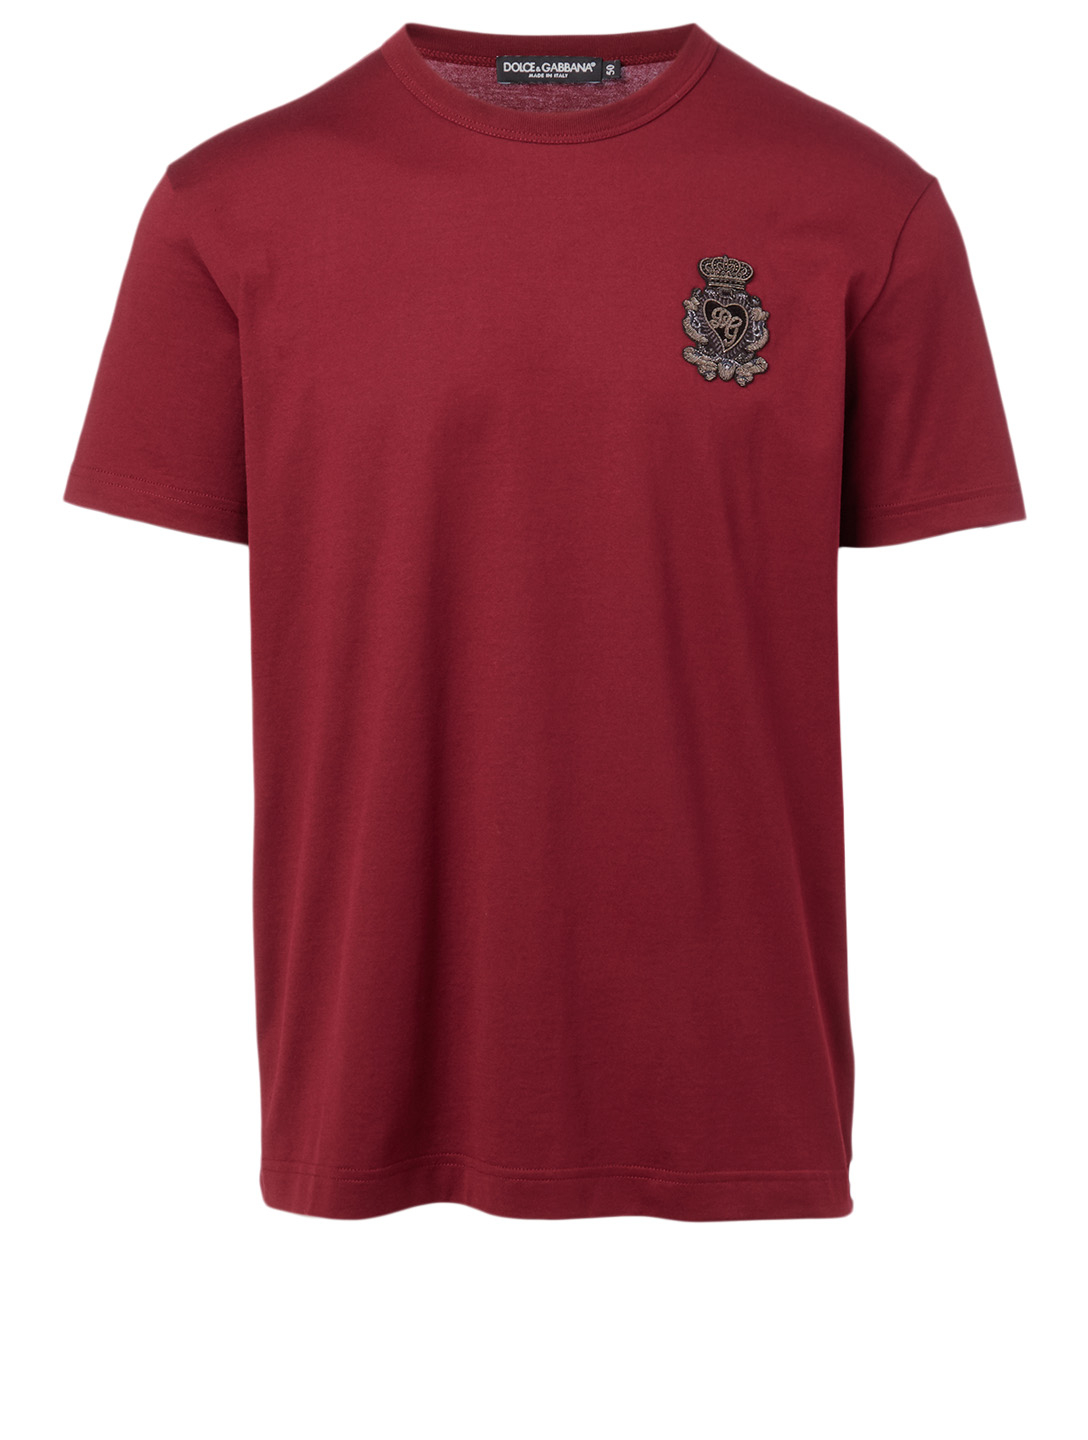 DOLCE & GABBANA Cotton T-Shirt With Heraldic Patch Men's Red